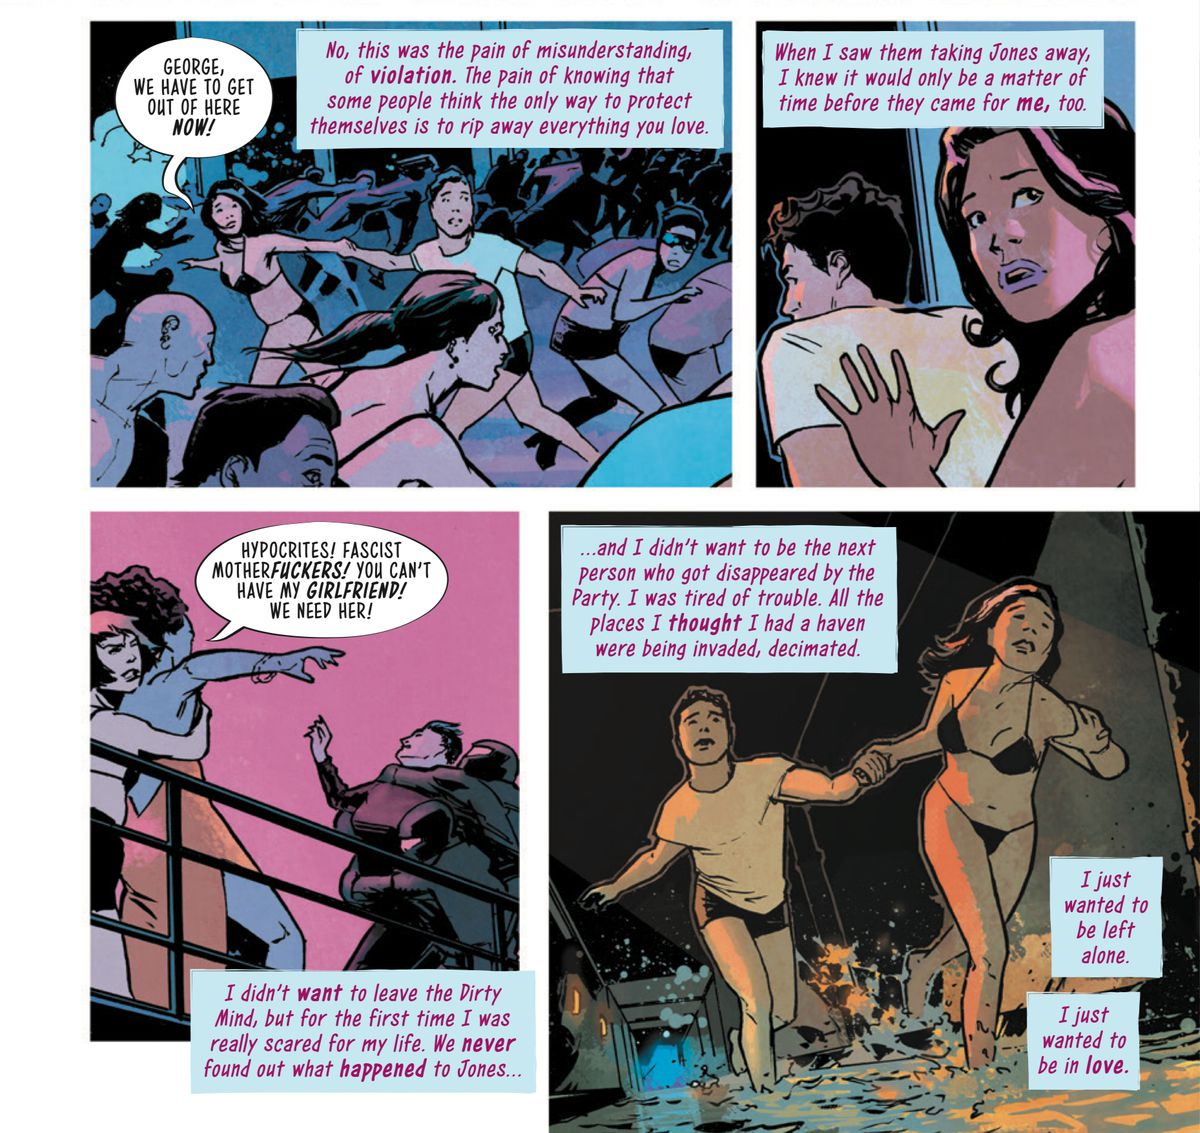 As Avery and her boyfriend George run through the underground sex club Dirty Mind, fleeing from fascist cops, all she can think of is how scared she is and how much she wants to be safe, in Safe Sex #1, Image Comics (2019).